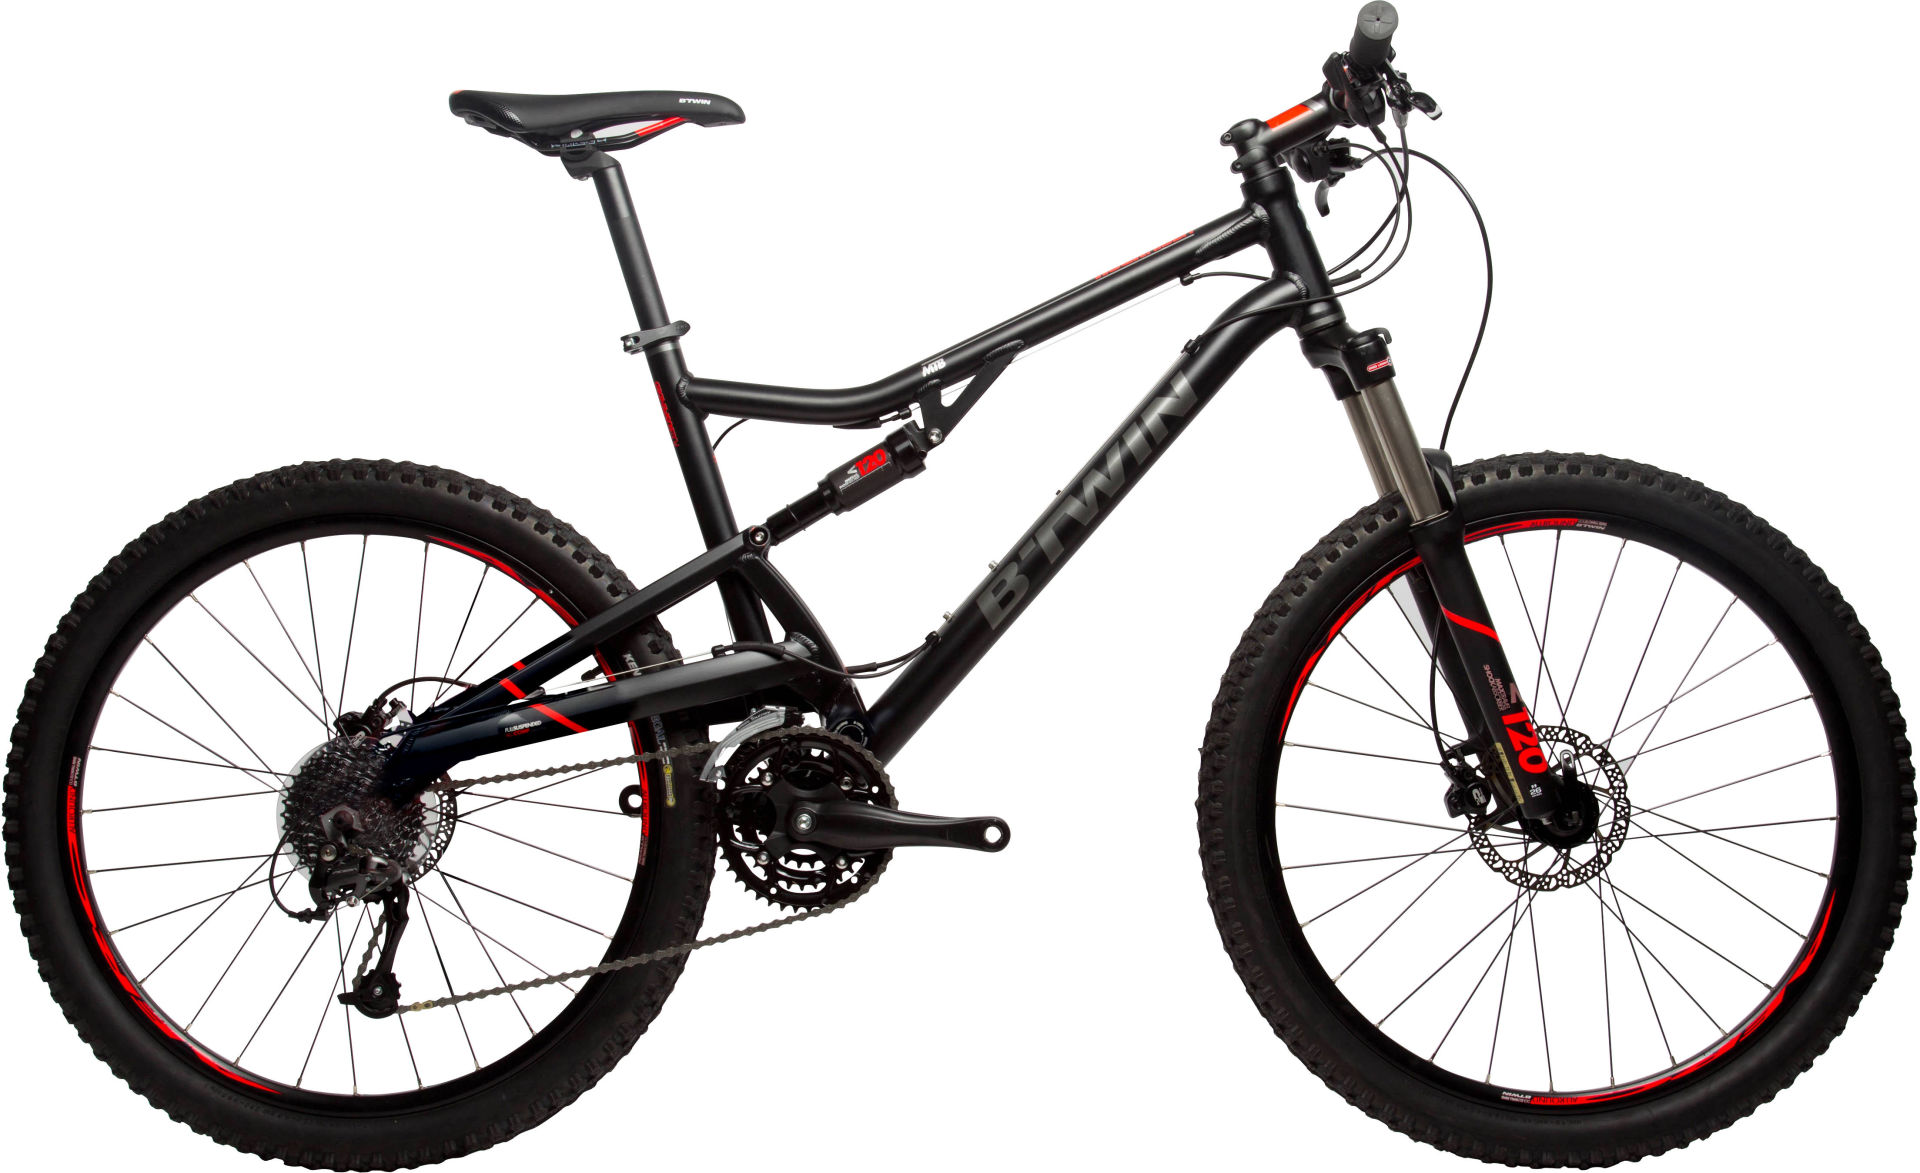 daf11f5ef Btwin Rockrider 520 Suspension Mountain Bike - Black Orange 2017 - Cross  country (XC) bike